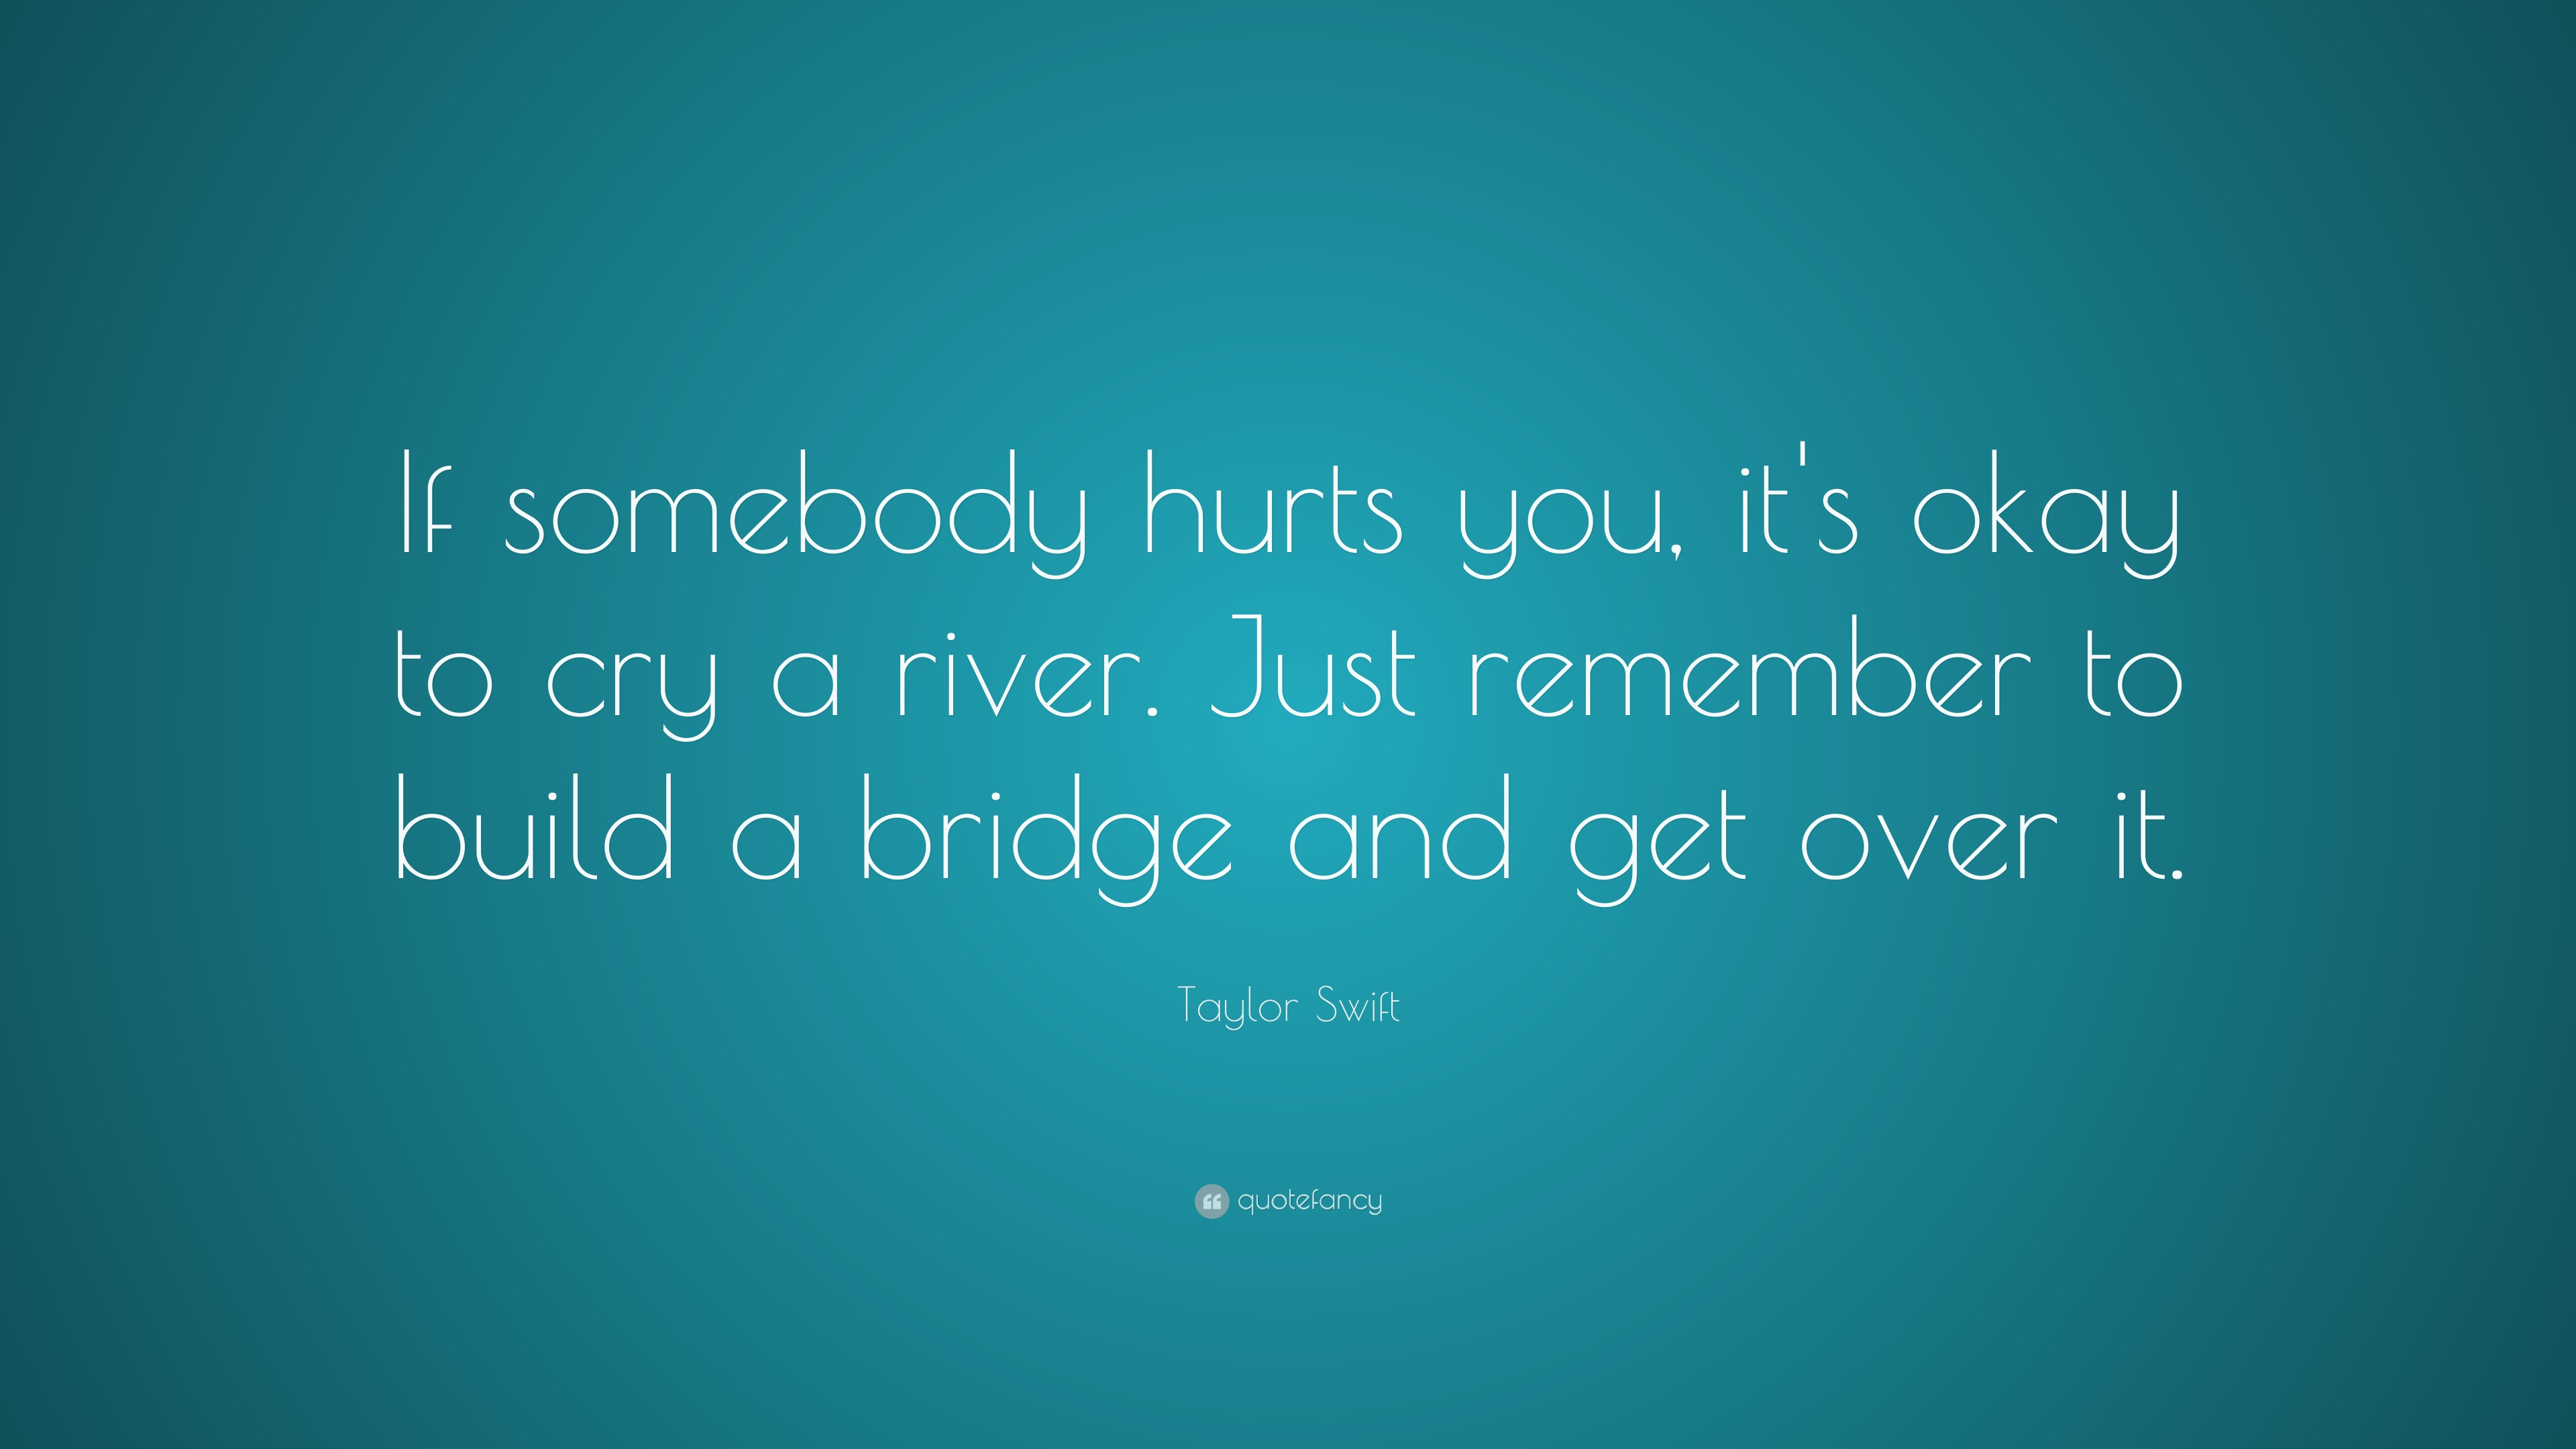 taylor swift quote if somebody hurts you it s okay to cry a river